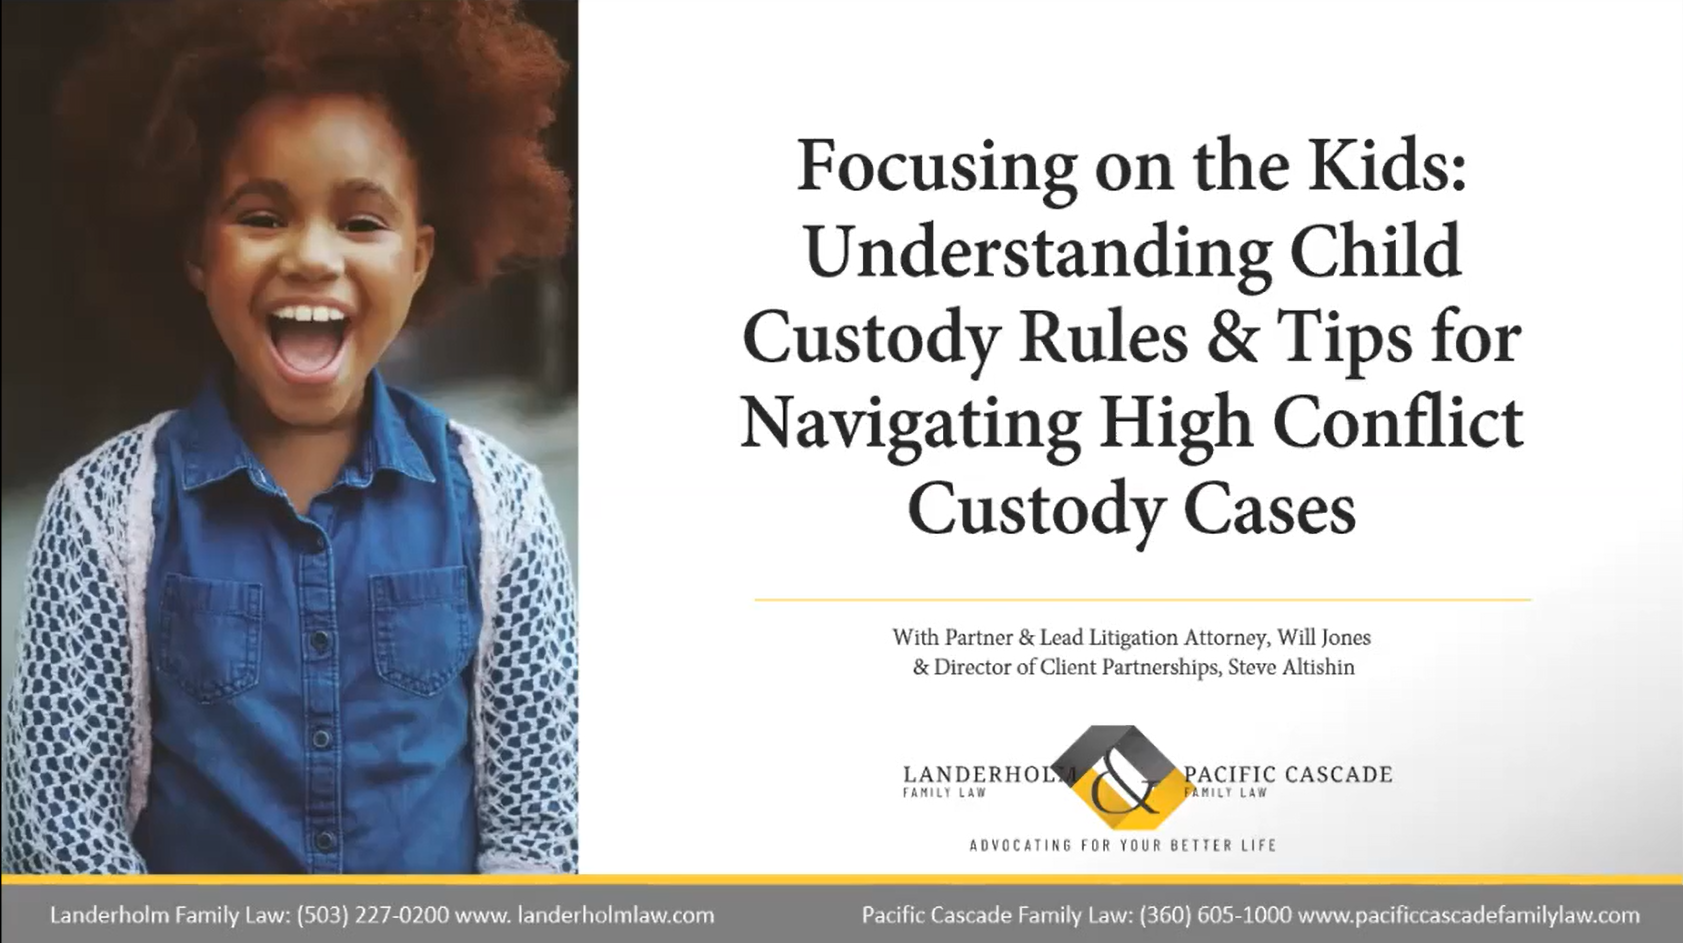 "Landerholm Family Law & Pacific Cascade Family Law's past webinar ""Focusing on the Kids: Understanding Child Custody Rules & Tips for Navigating High Conflict Custody Cases"" with Partner and Lead Litigation Attorney Will Jones and Director of Client Partnerships Steve Altishin"